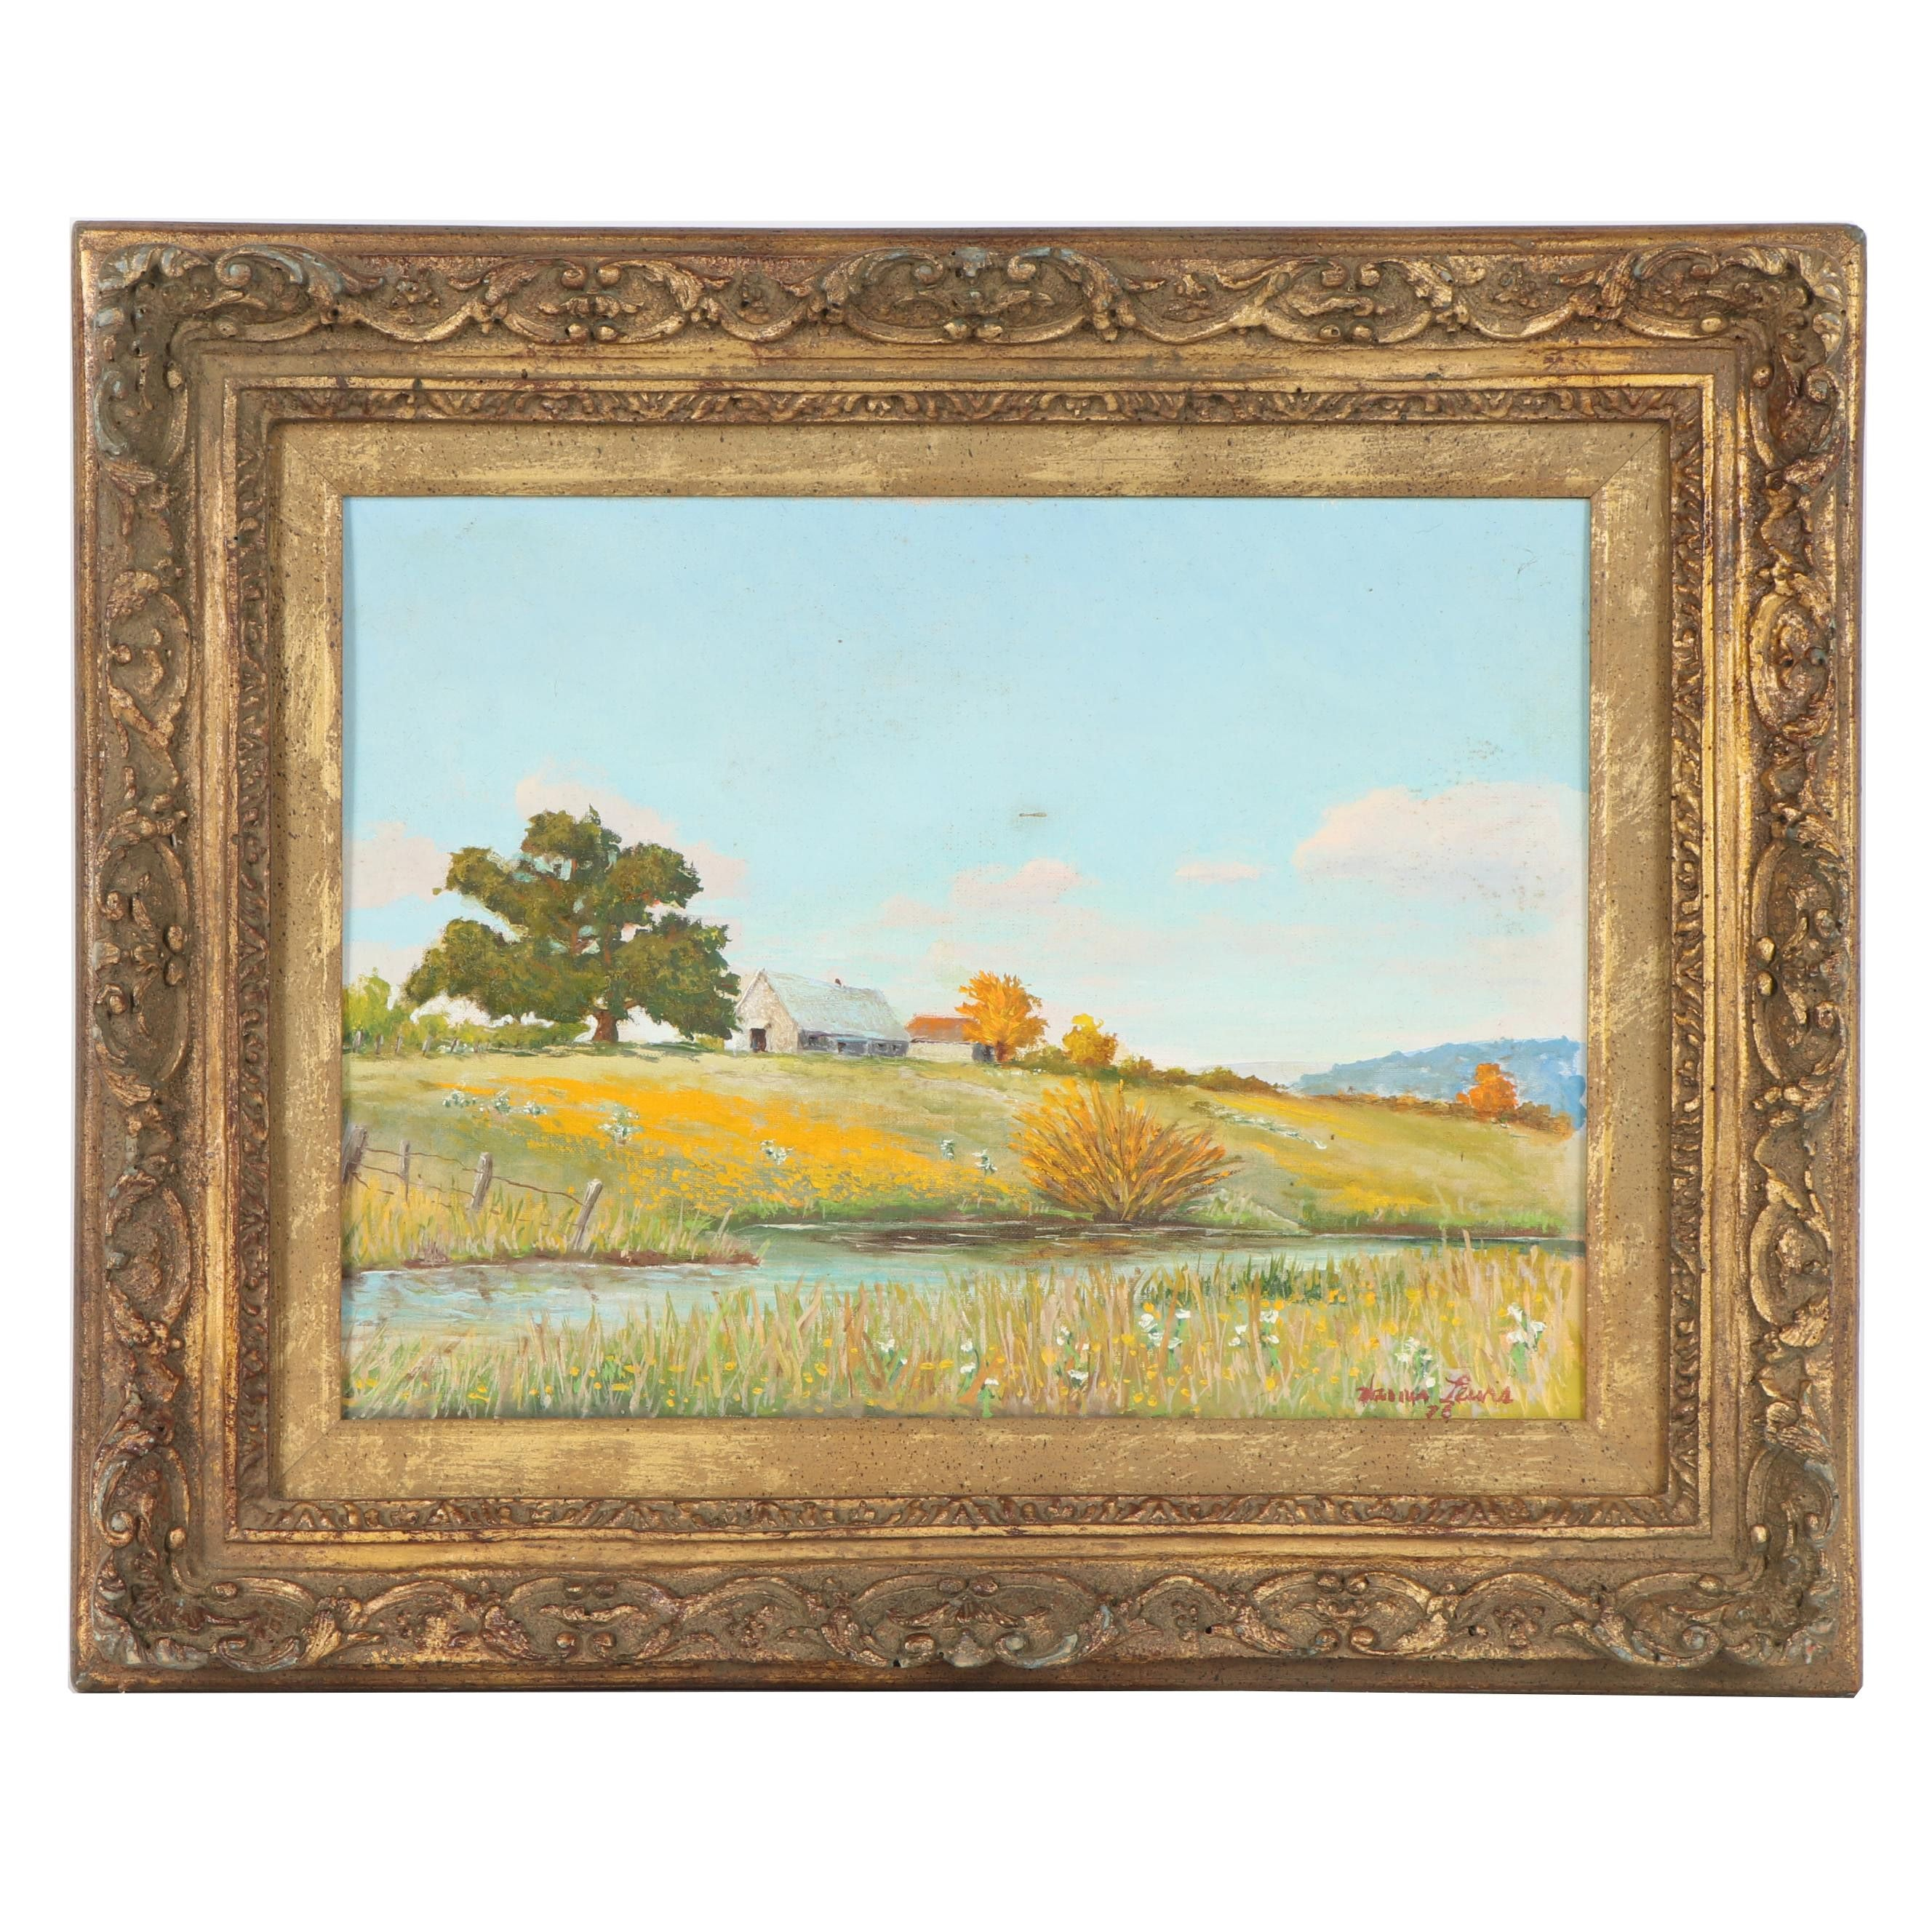 Warner Lewis Oil Painting of Rural Landscape